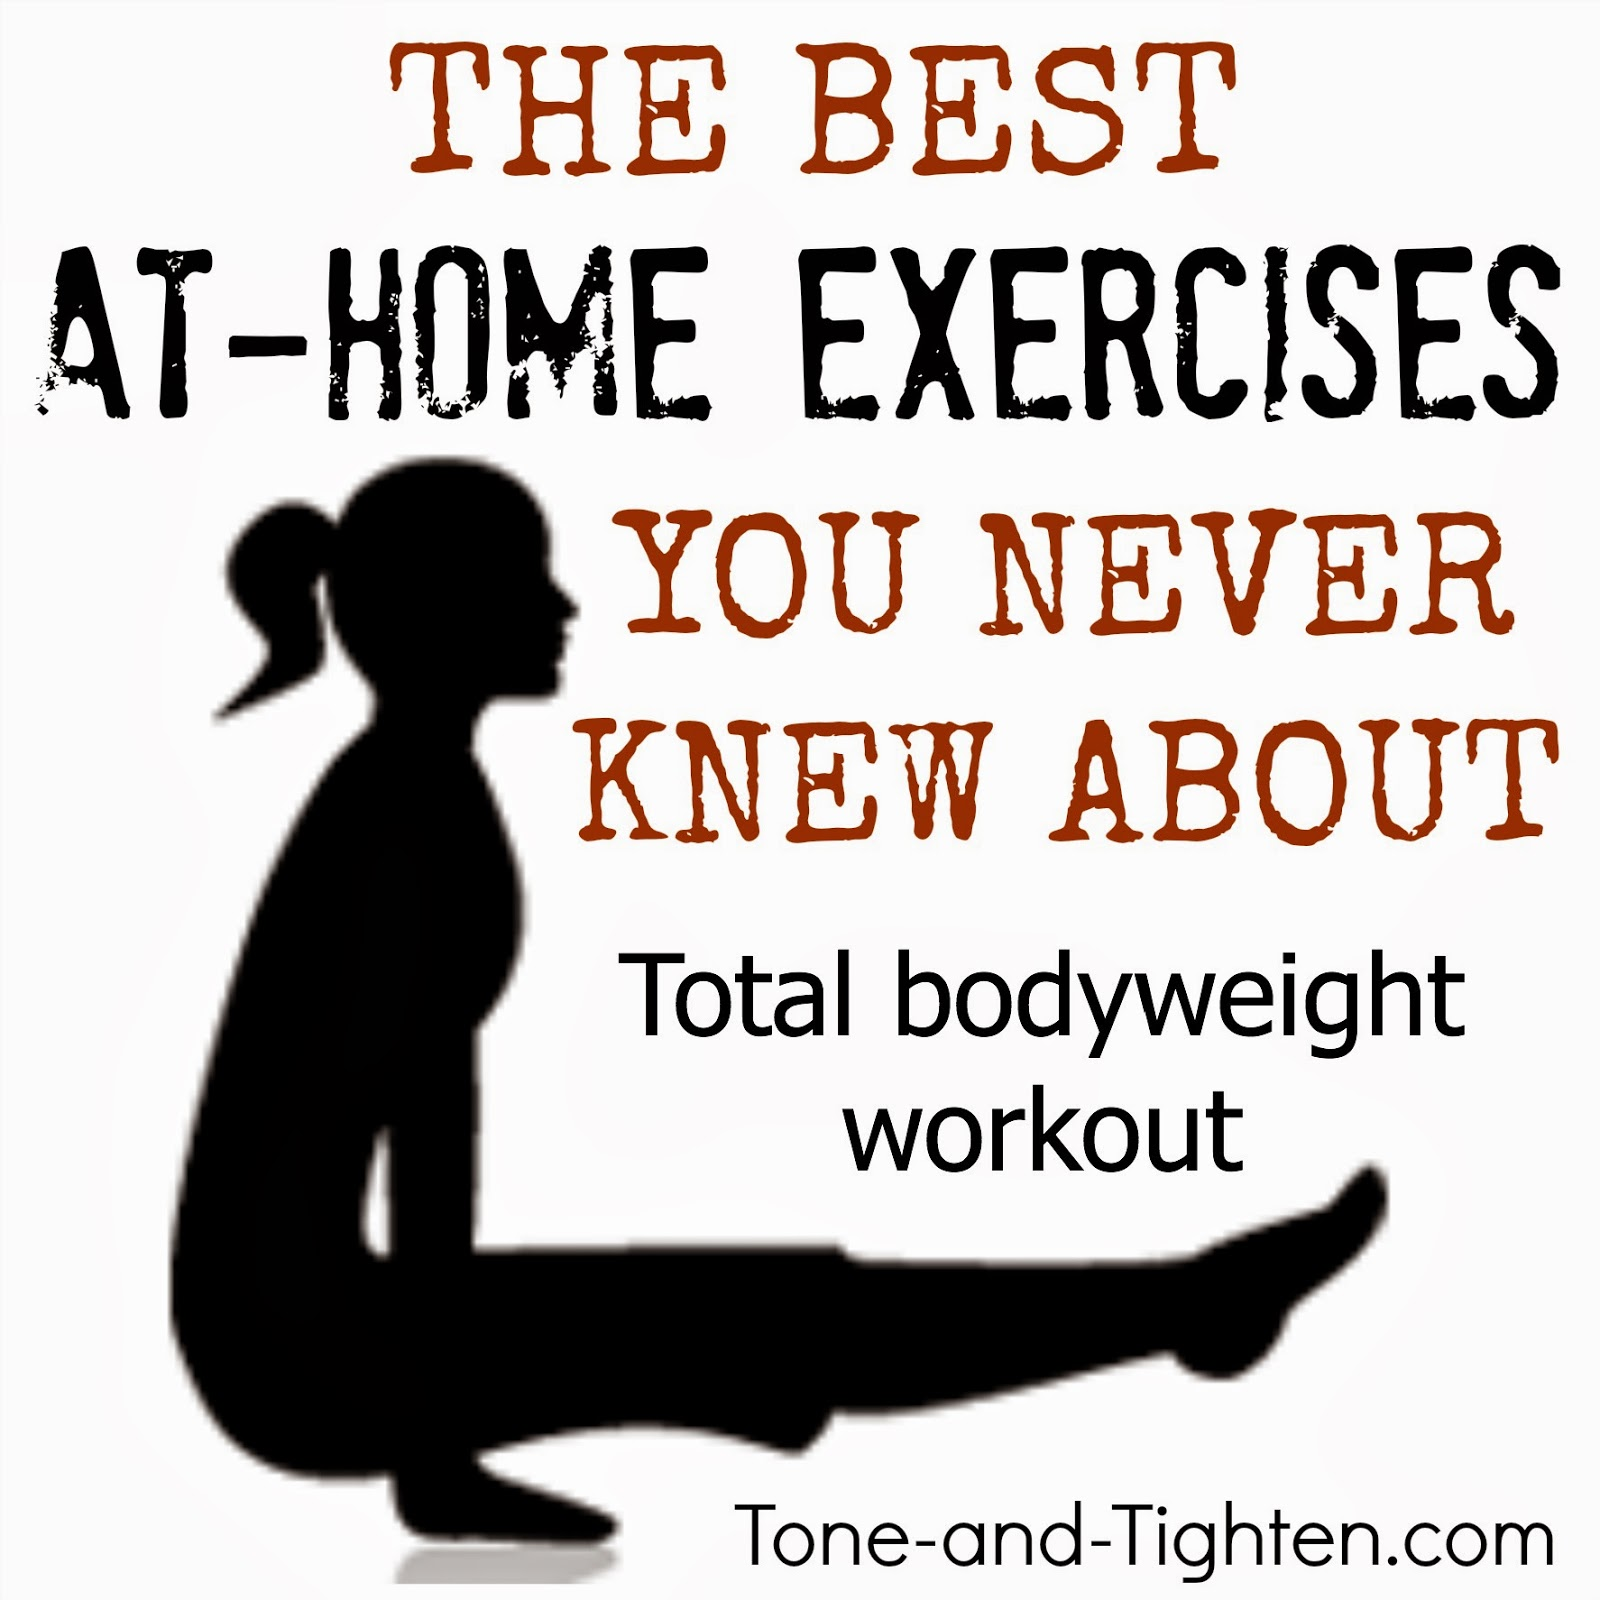 https://tone-and-tighten.com/2014/01/the-best-at-home-exercises-you-never.html#more